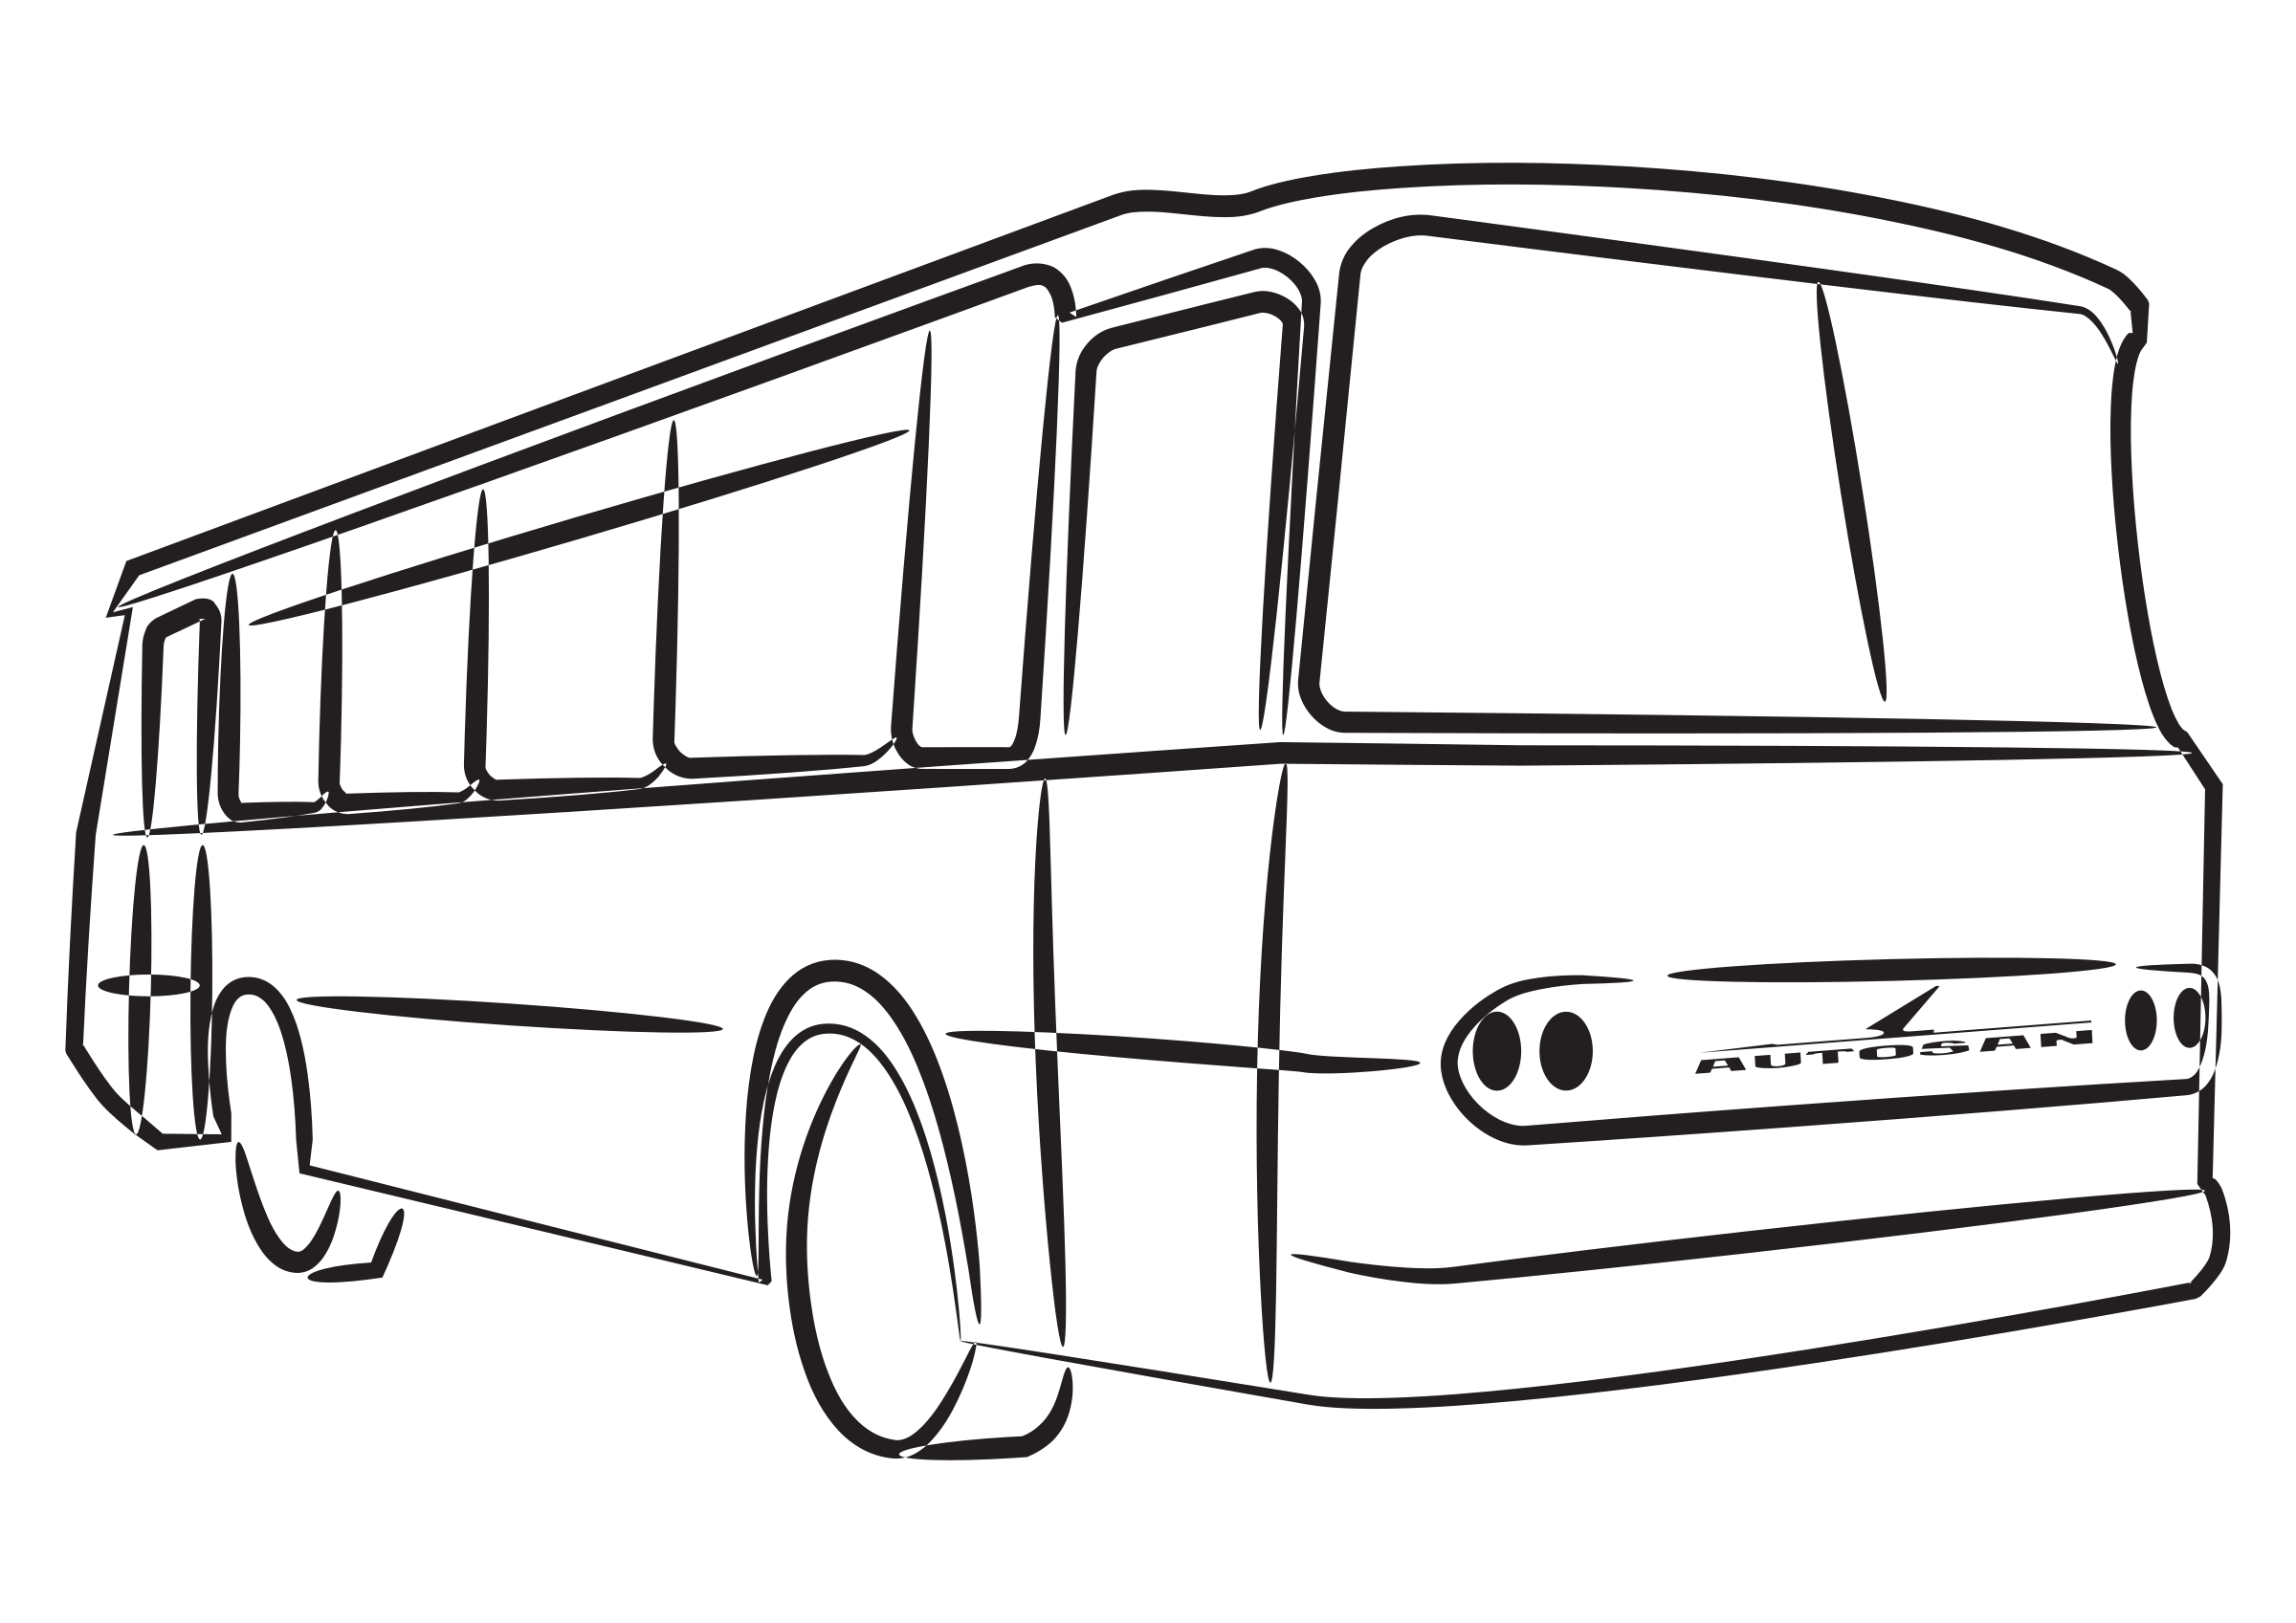 Free school bus clipart black and white jpg transparent stock Oakwood Primary School - Our Residential jpg transparent stock